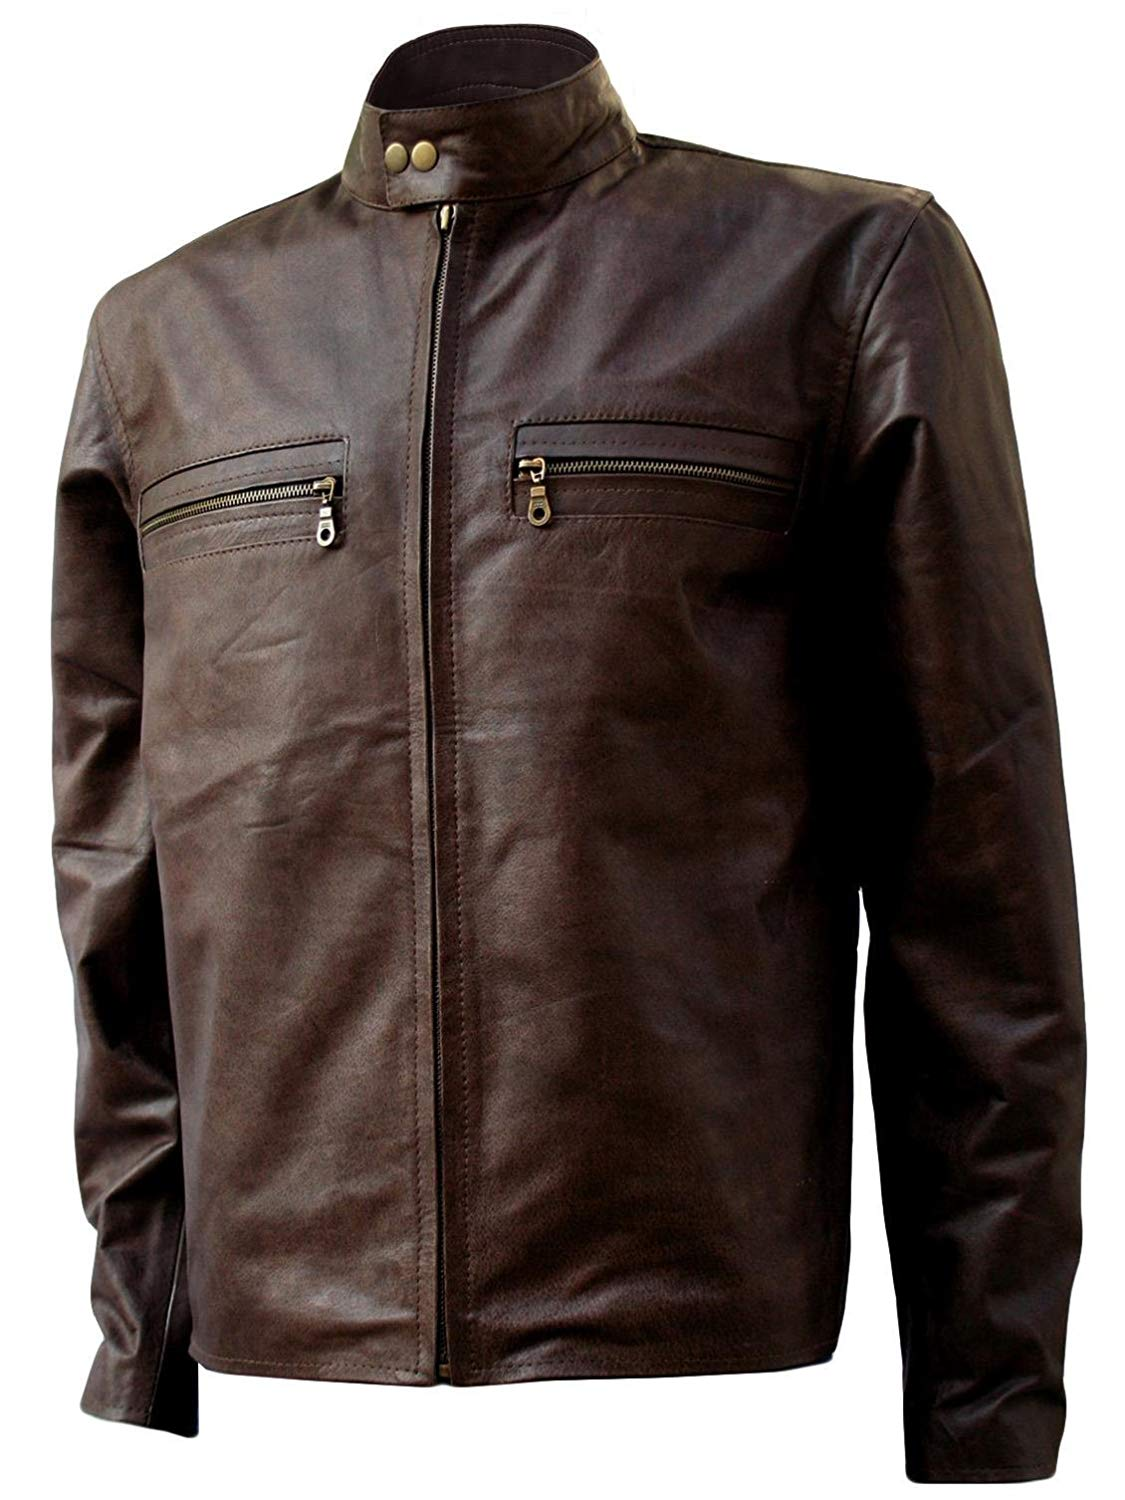 Xport Designs Real Leather 3XL Tom Cruise Distressed Leather Jacket